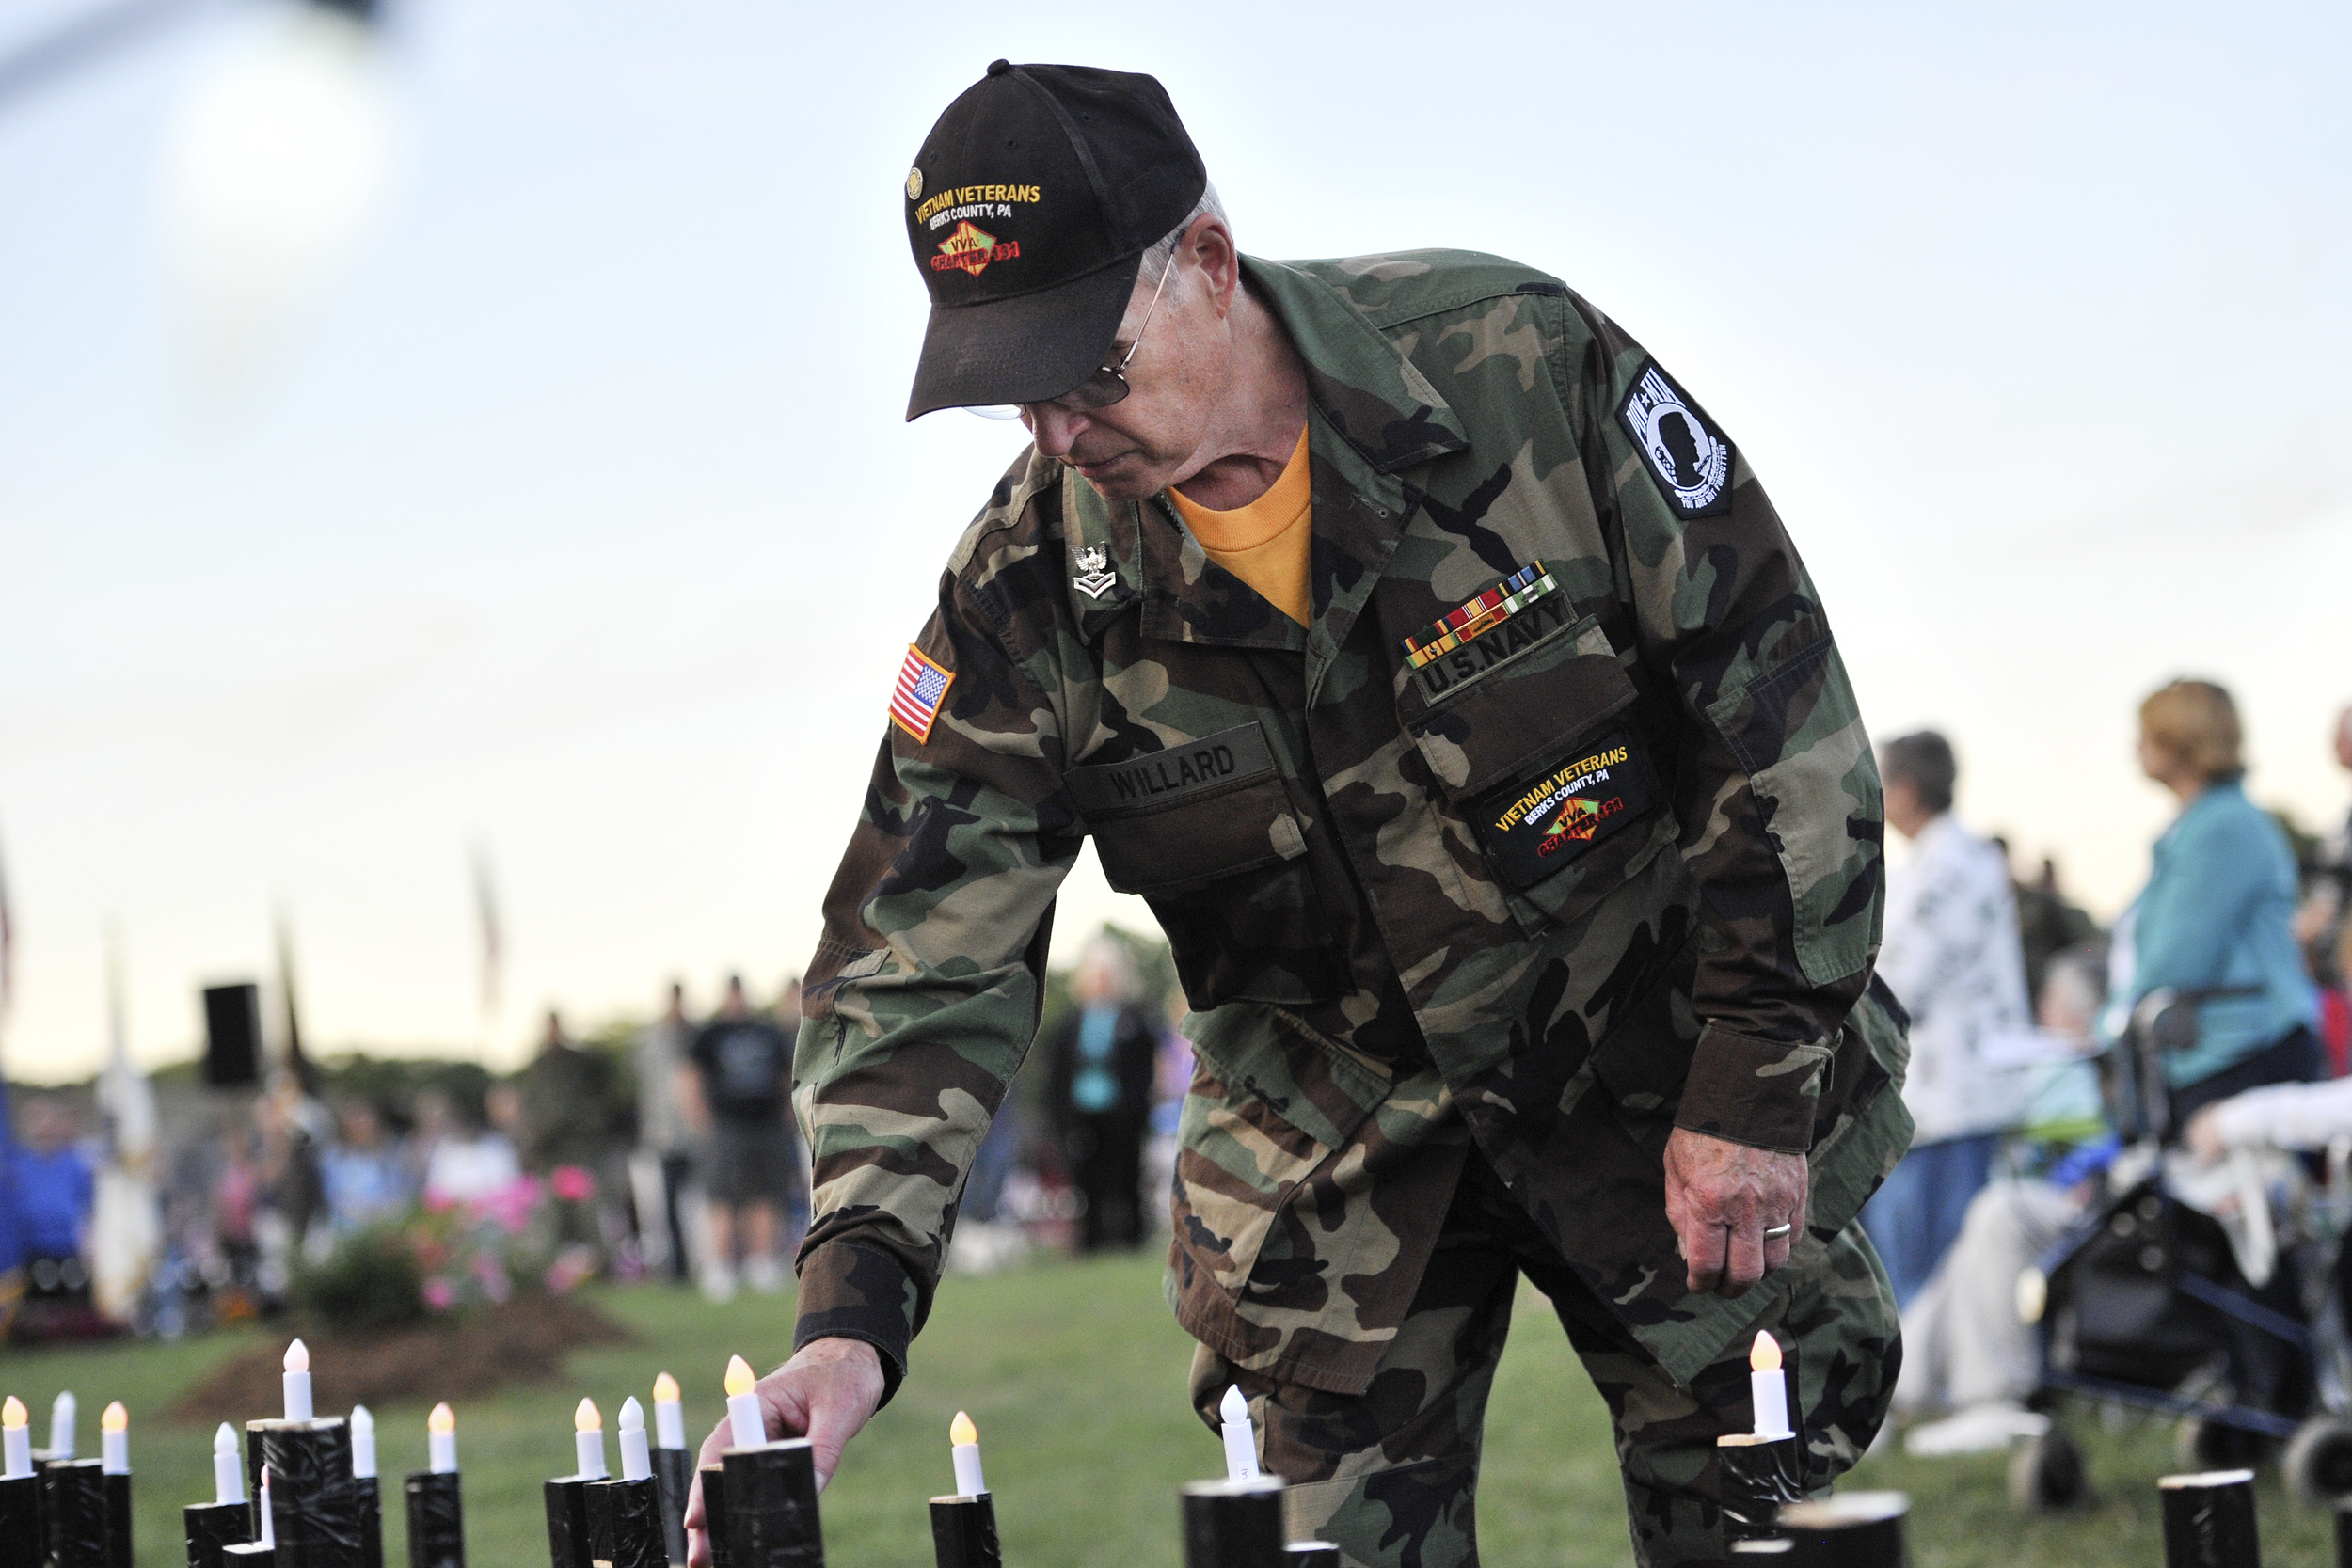 Joe Willard of Muhlenberg Township places a candle in memory of a fallen soldier at the candlelight ceremony on June 10, 2016, at the Moving Wall at Jim Dietrich Park in Muhlenberg Township, PA. (Sarah Stier: Reading Eagle)